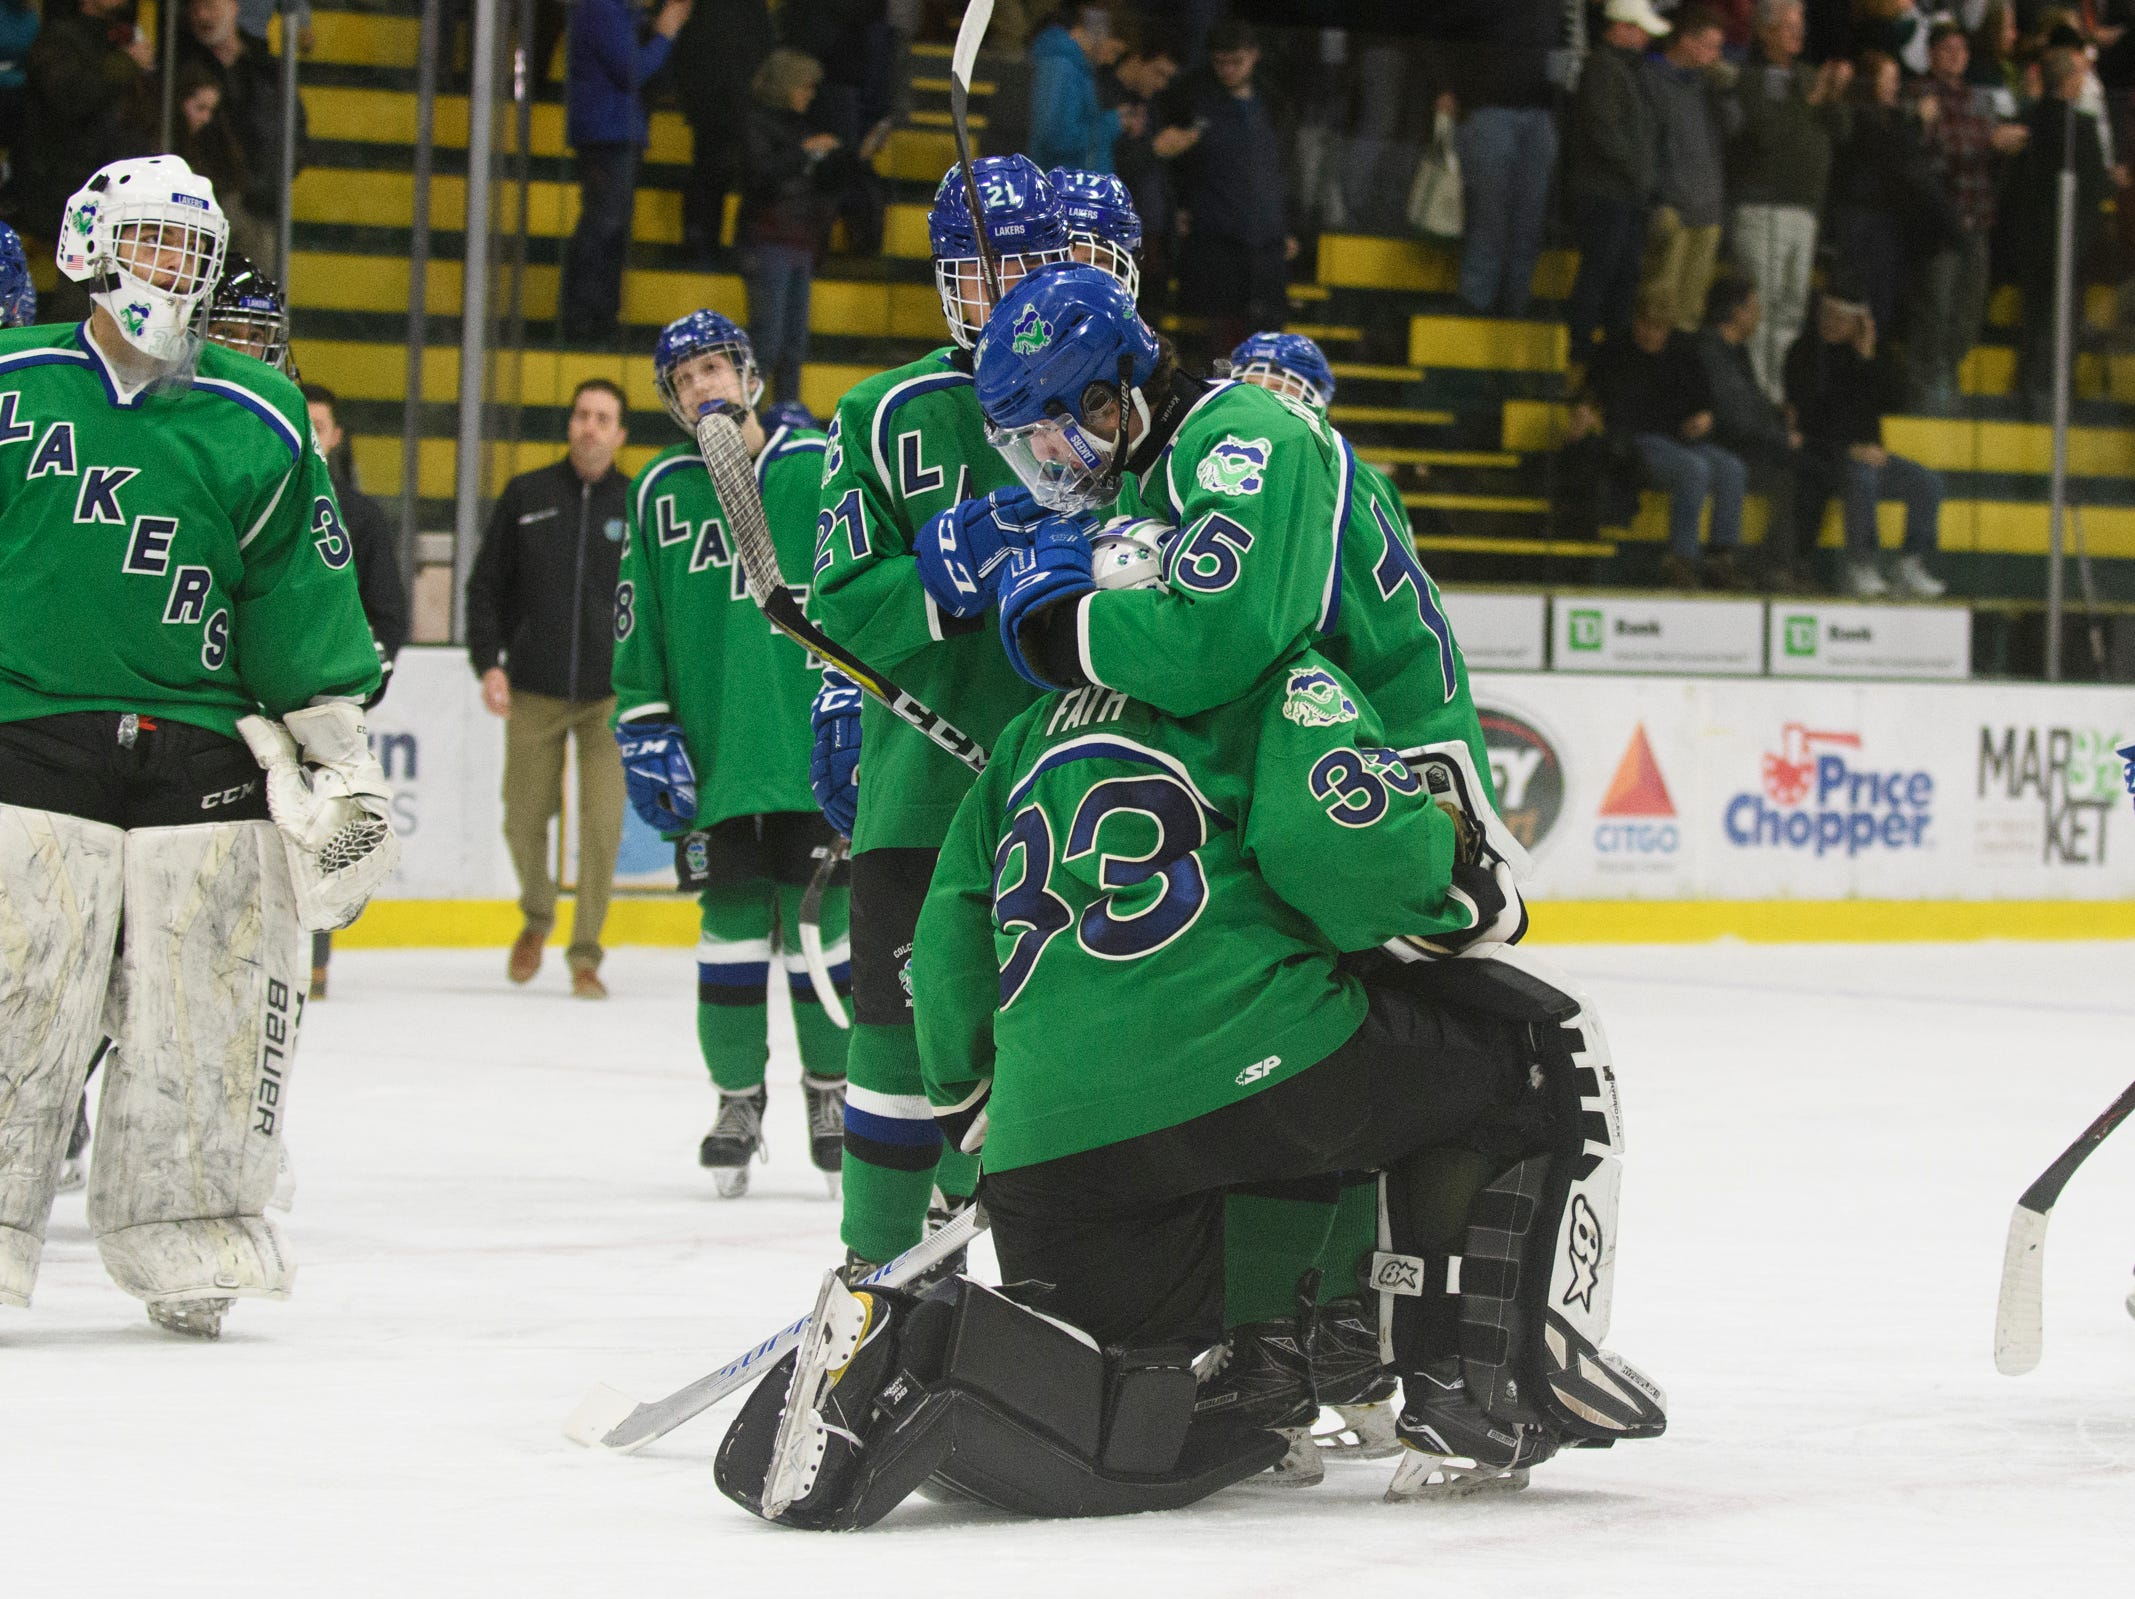 Colchester's Andy Roast (15) hugs goalie Sam Fath (33) at the conclusion of the DII boys hockey championship game between the Woodstock Wasps and the Colchester Lakers at Gutterson Field House on Wednesday night March 13, 2019 in Burlington, Vermont.